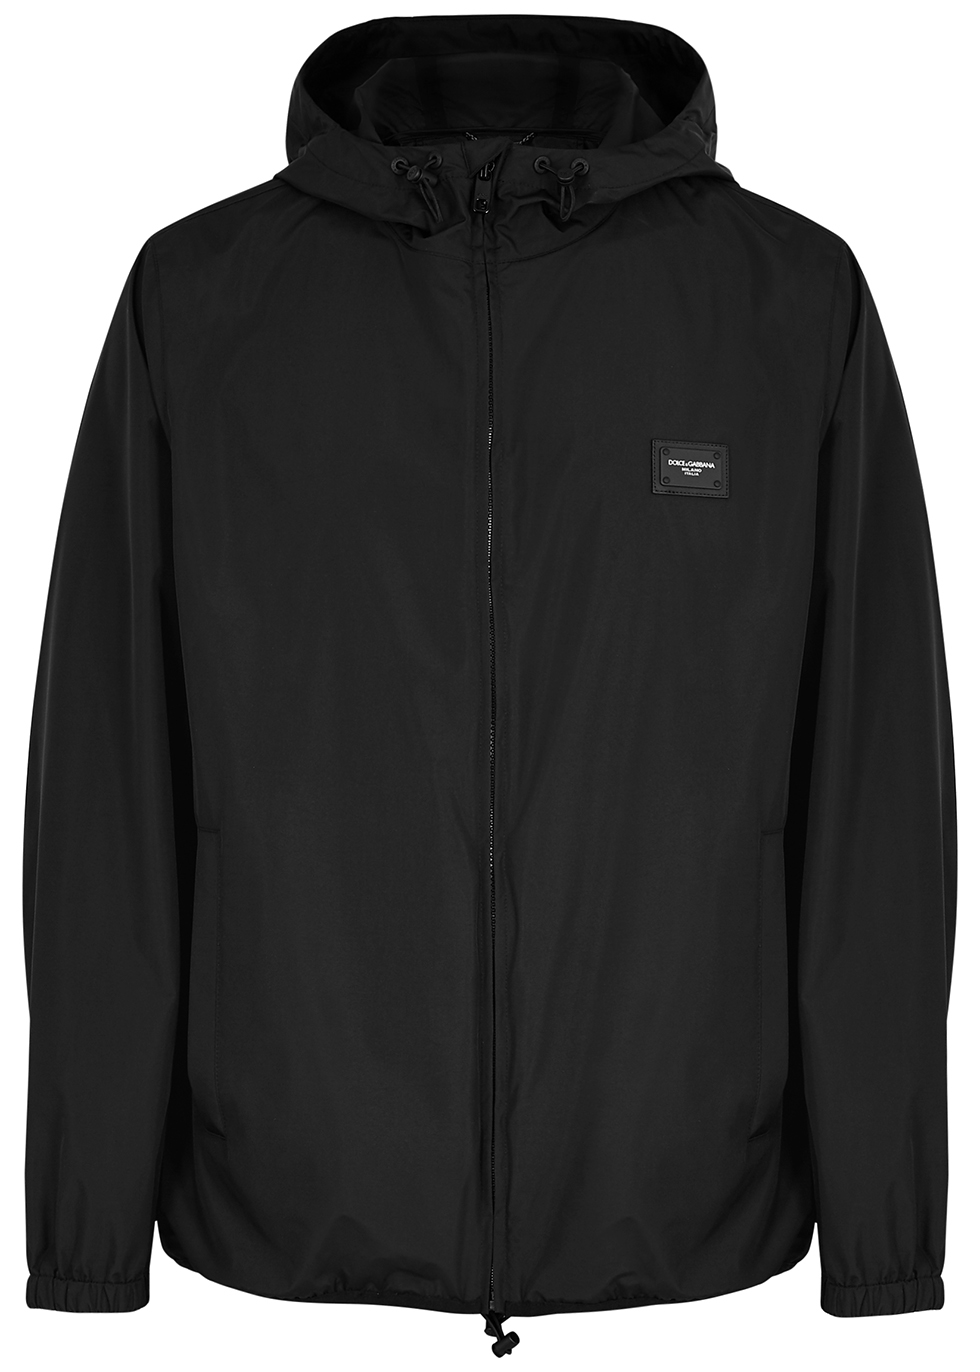 Black logo shell jacket